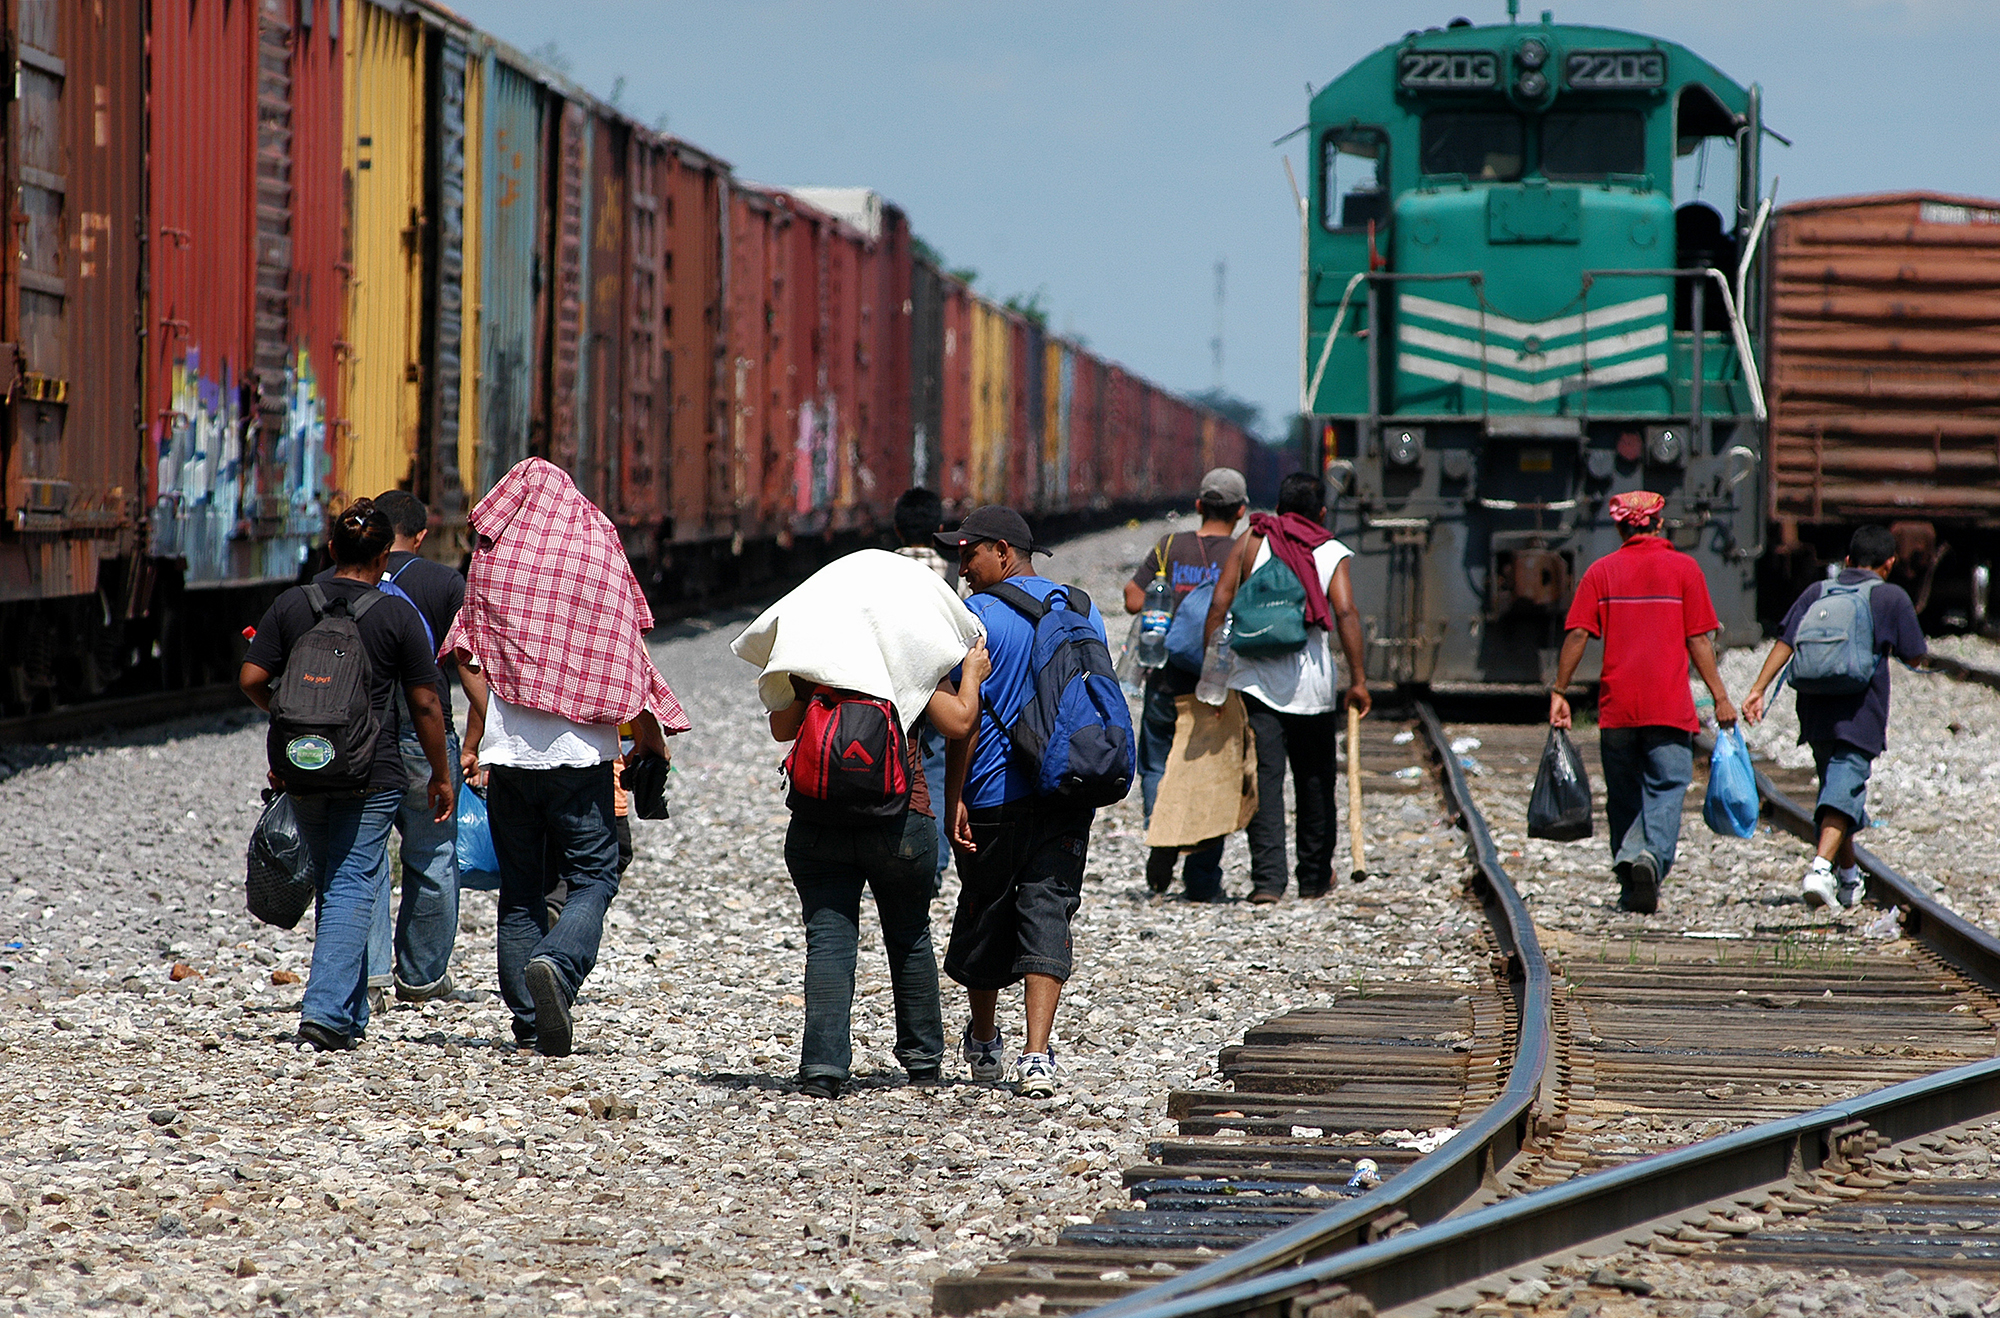 "Central American migrants walk over the tracks to catch the train north, Tierra Blanca, Veracruz, Mexico, 28 June 2009.  Junio 28, 2009. Líneas férreas de Tierra Blanca, Veracruz, México. Migrantes centroamericanos en espera de la salida del tren hacia el norte. Migrants make their way toward Mexico's northern border by foot, bus and most commonly on the top of a network of freight trains. Here migrants in Tierra Blanca, Veracruz state, board ""La Bestia"" (The Beast) also known as ""El tren de la muerte"" (The Death Train)."